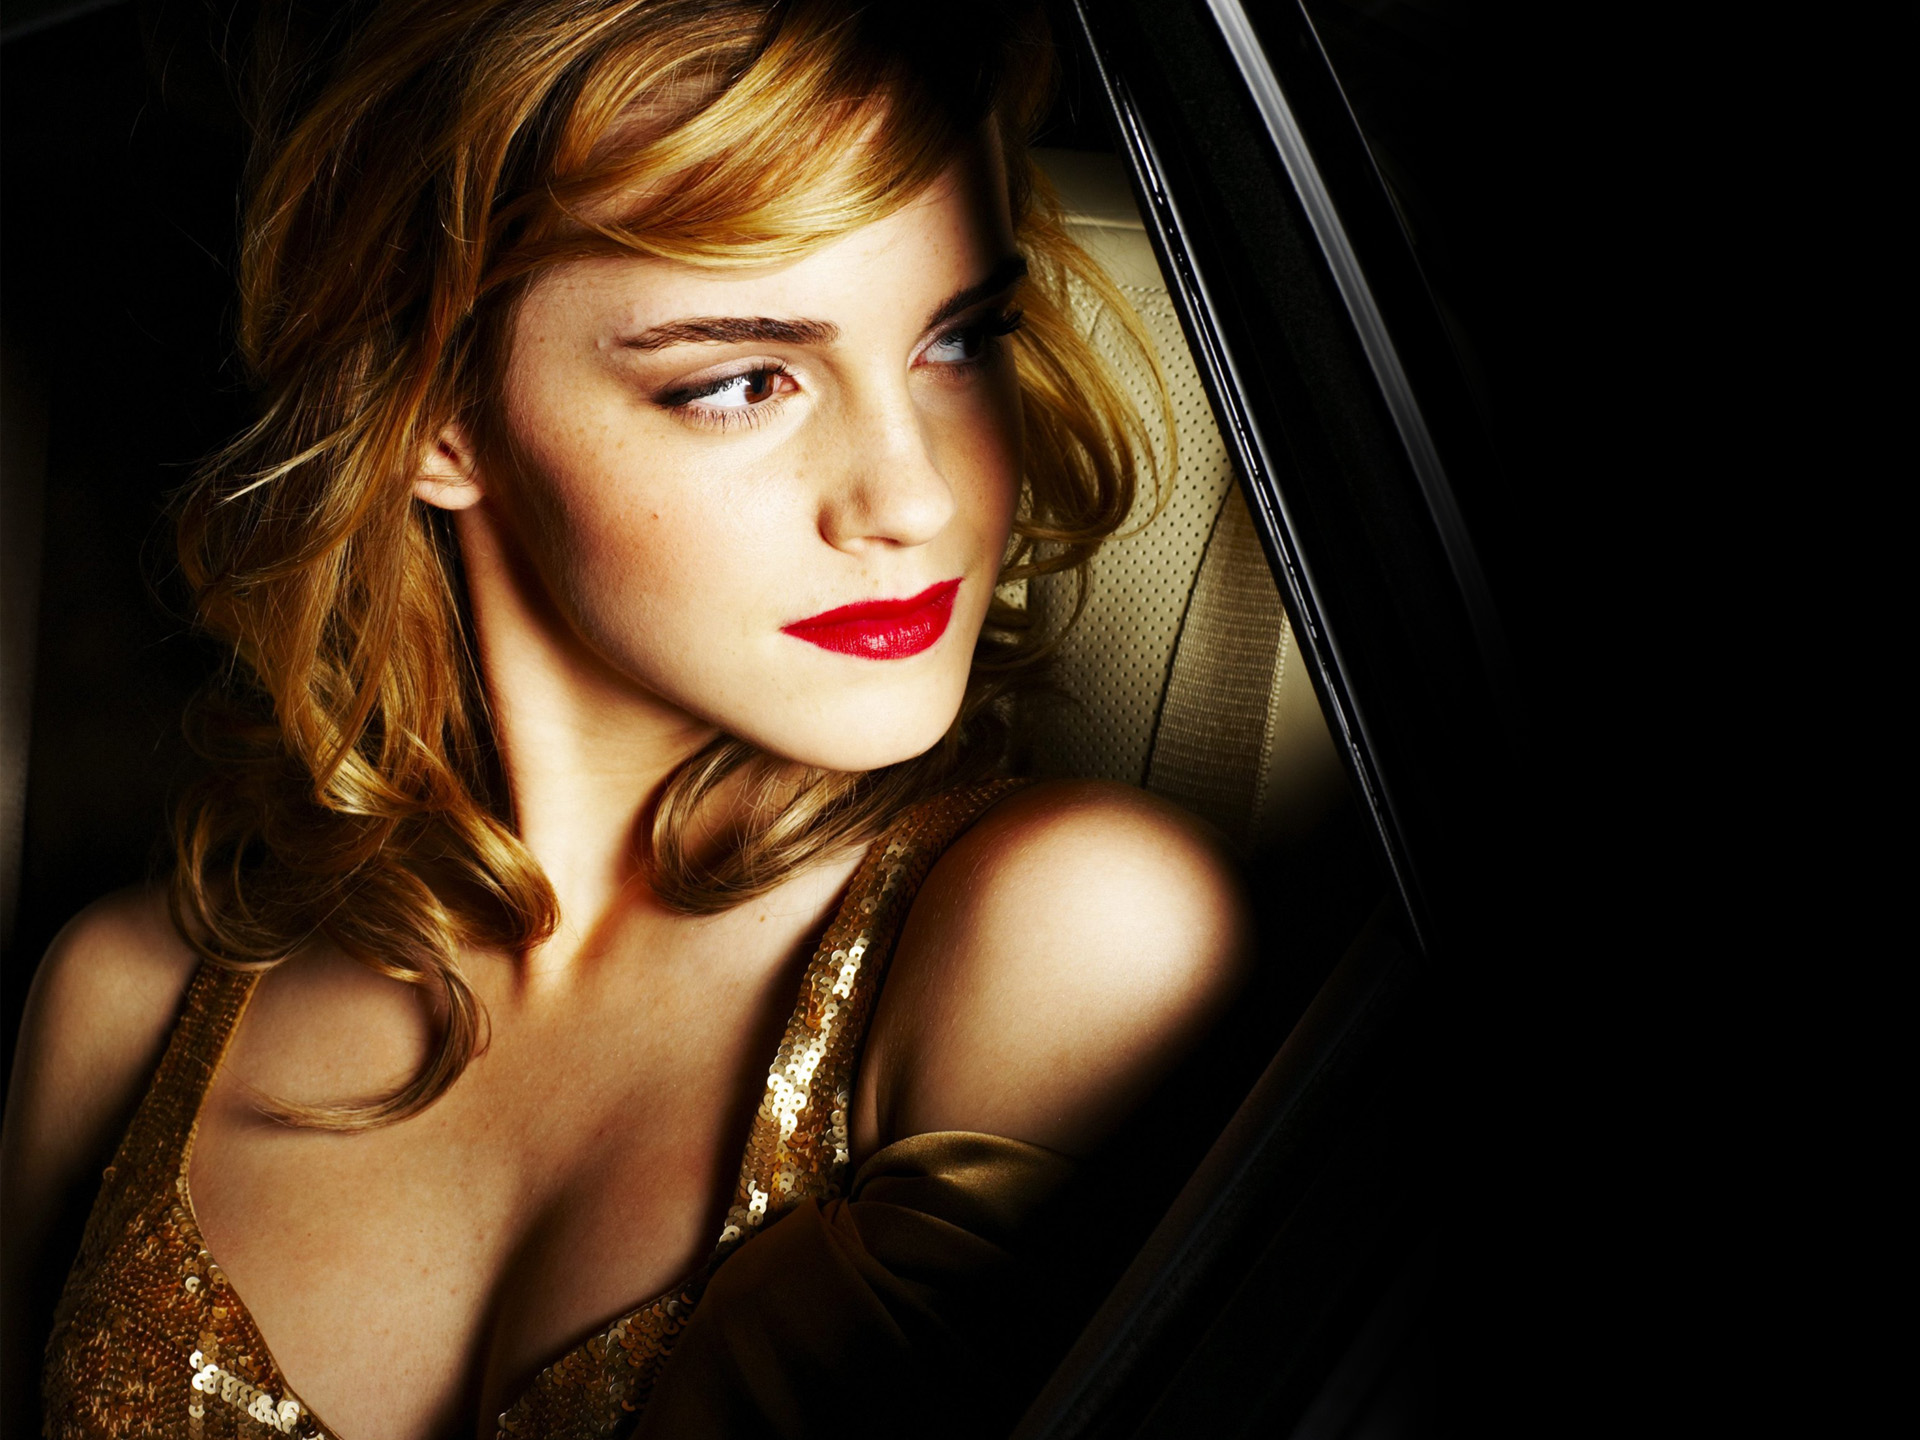 emma watson cute 10 Hot Emma Watson Wallpapers